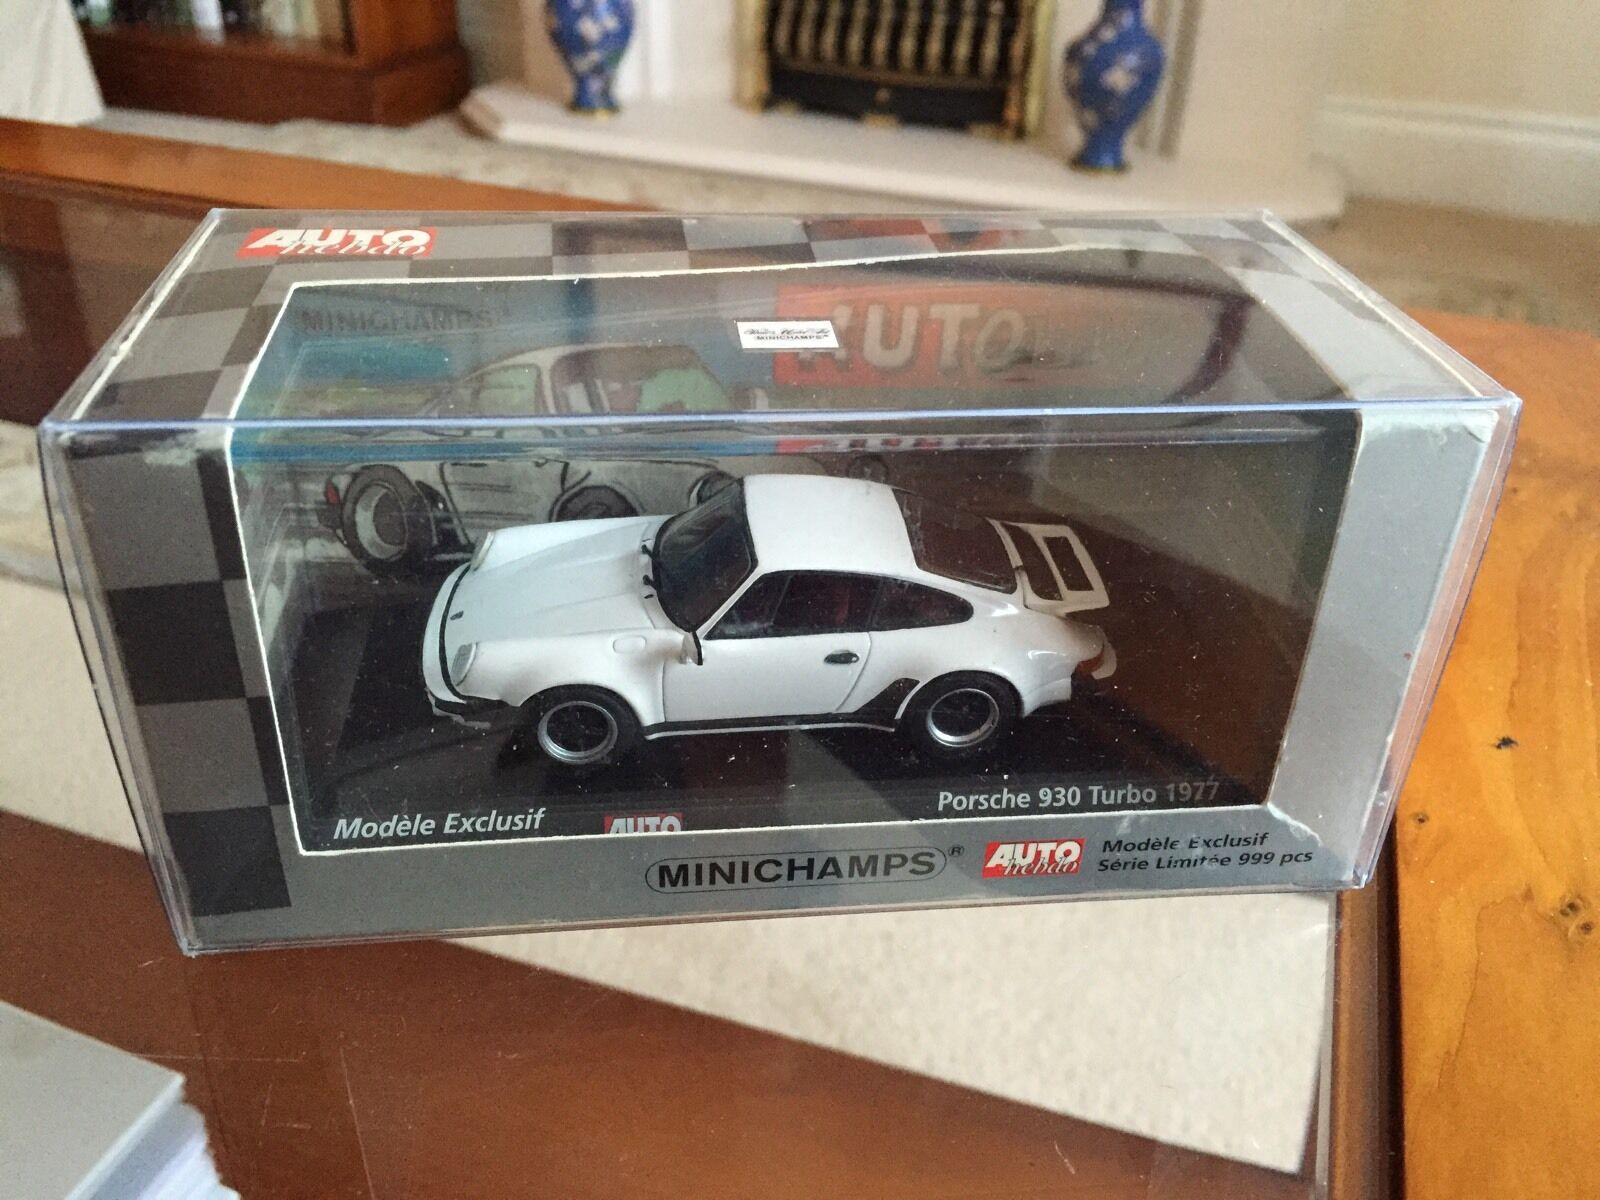 Rare Minichamps Porsche 930 Turbo for 1977. Auto Hebdo Edition. In 1 43 Diecast